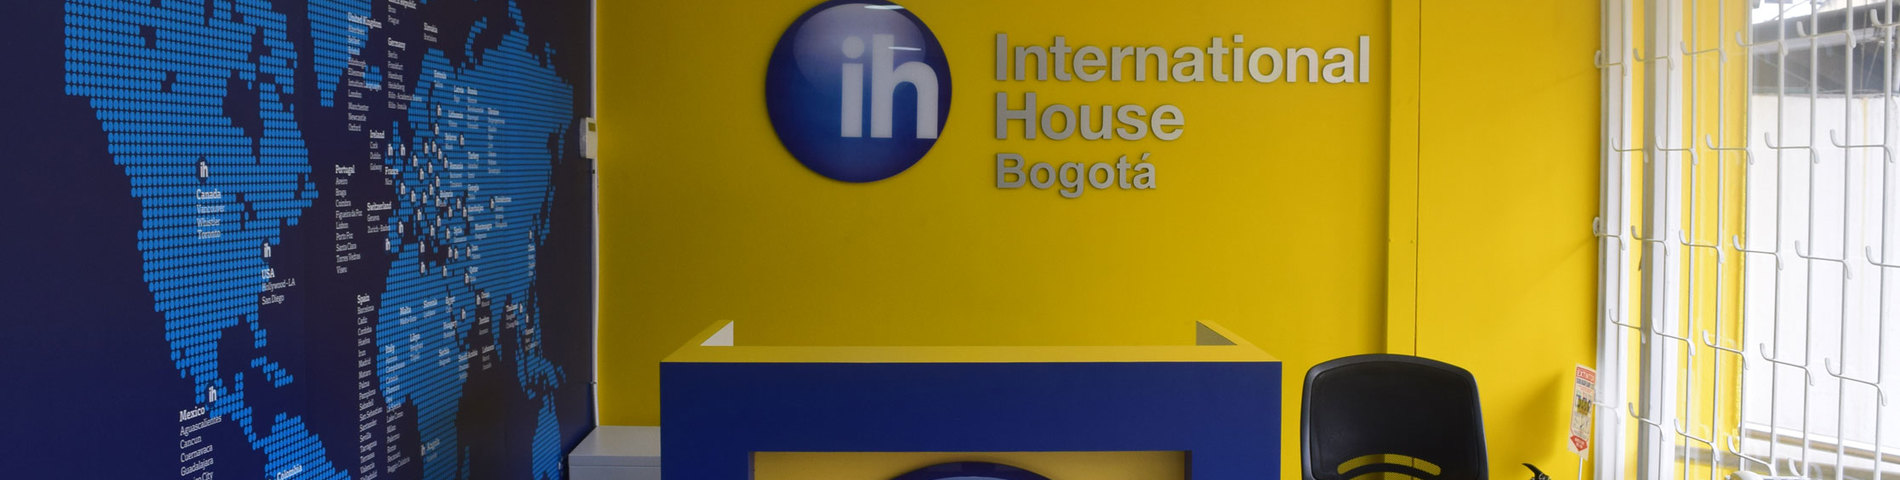 International House Bogota immagine 1